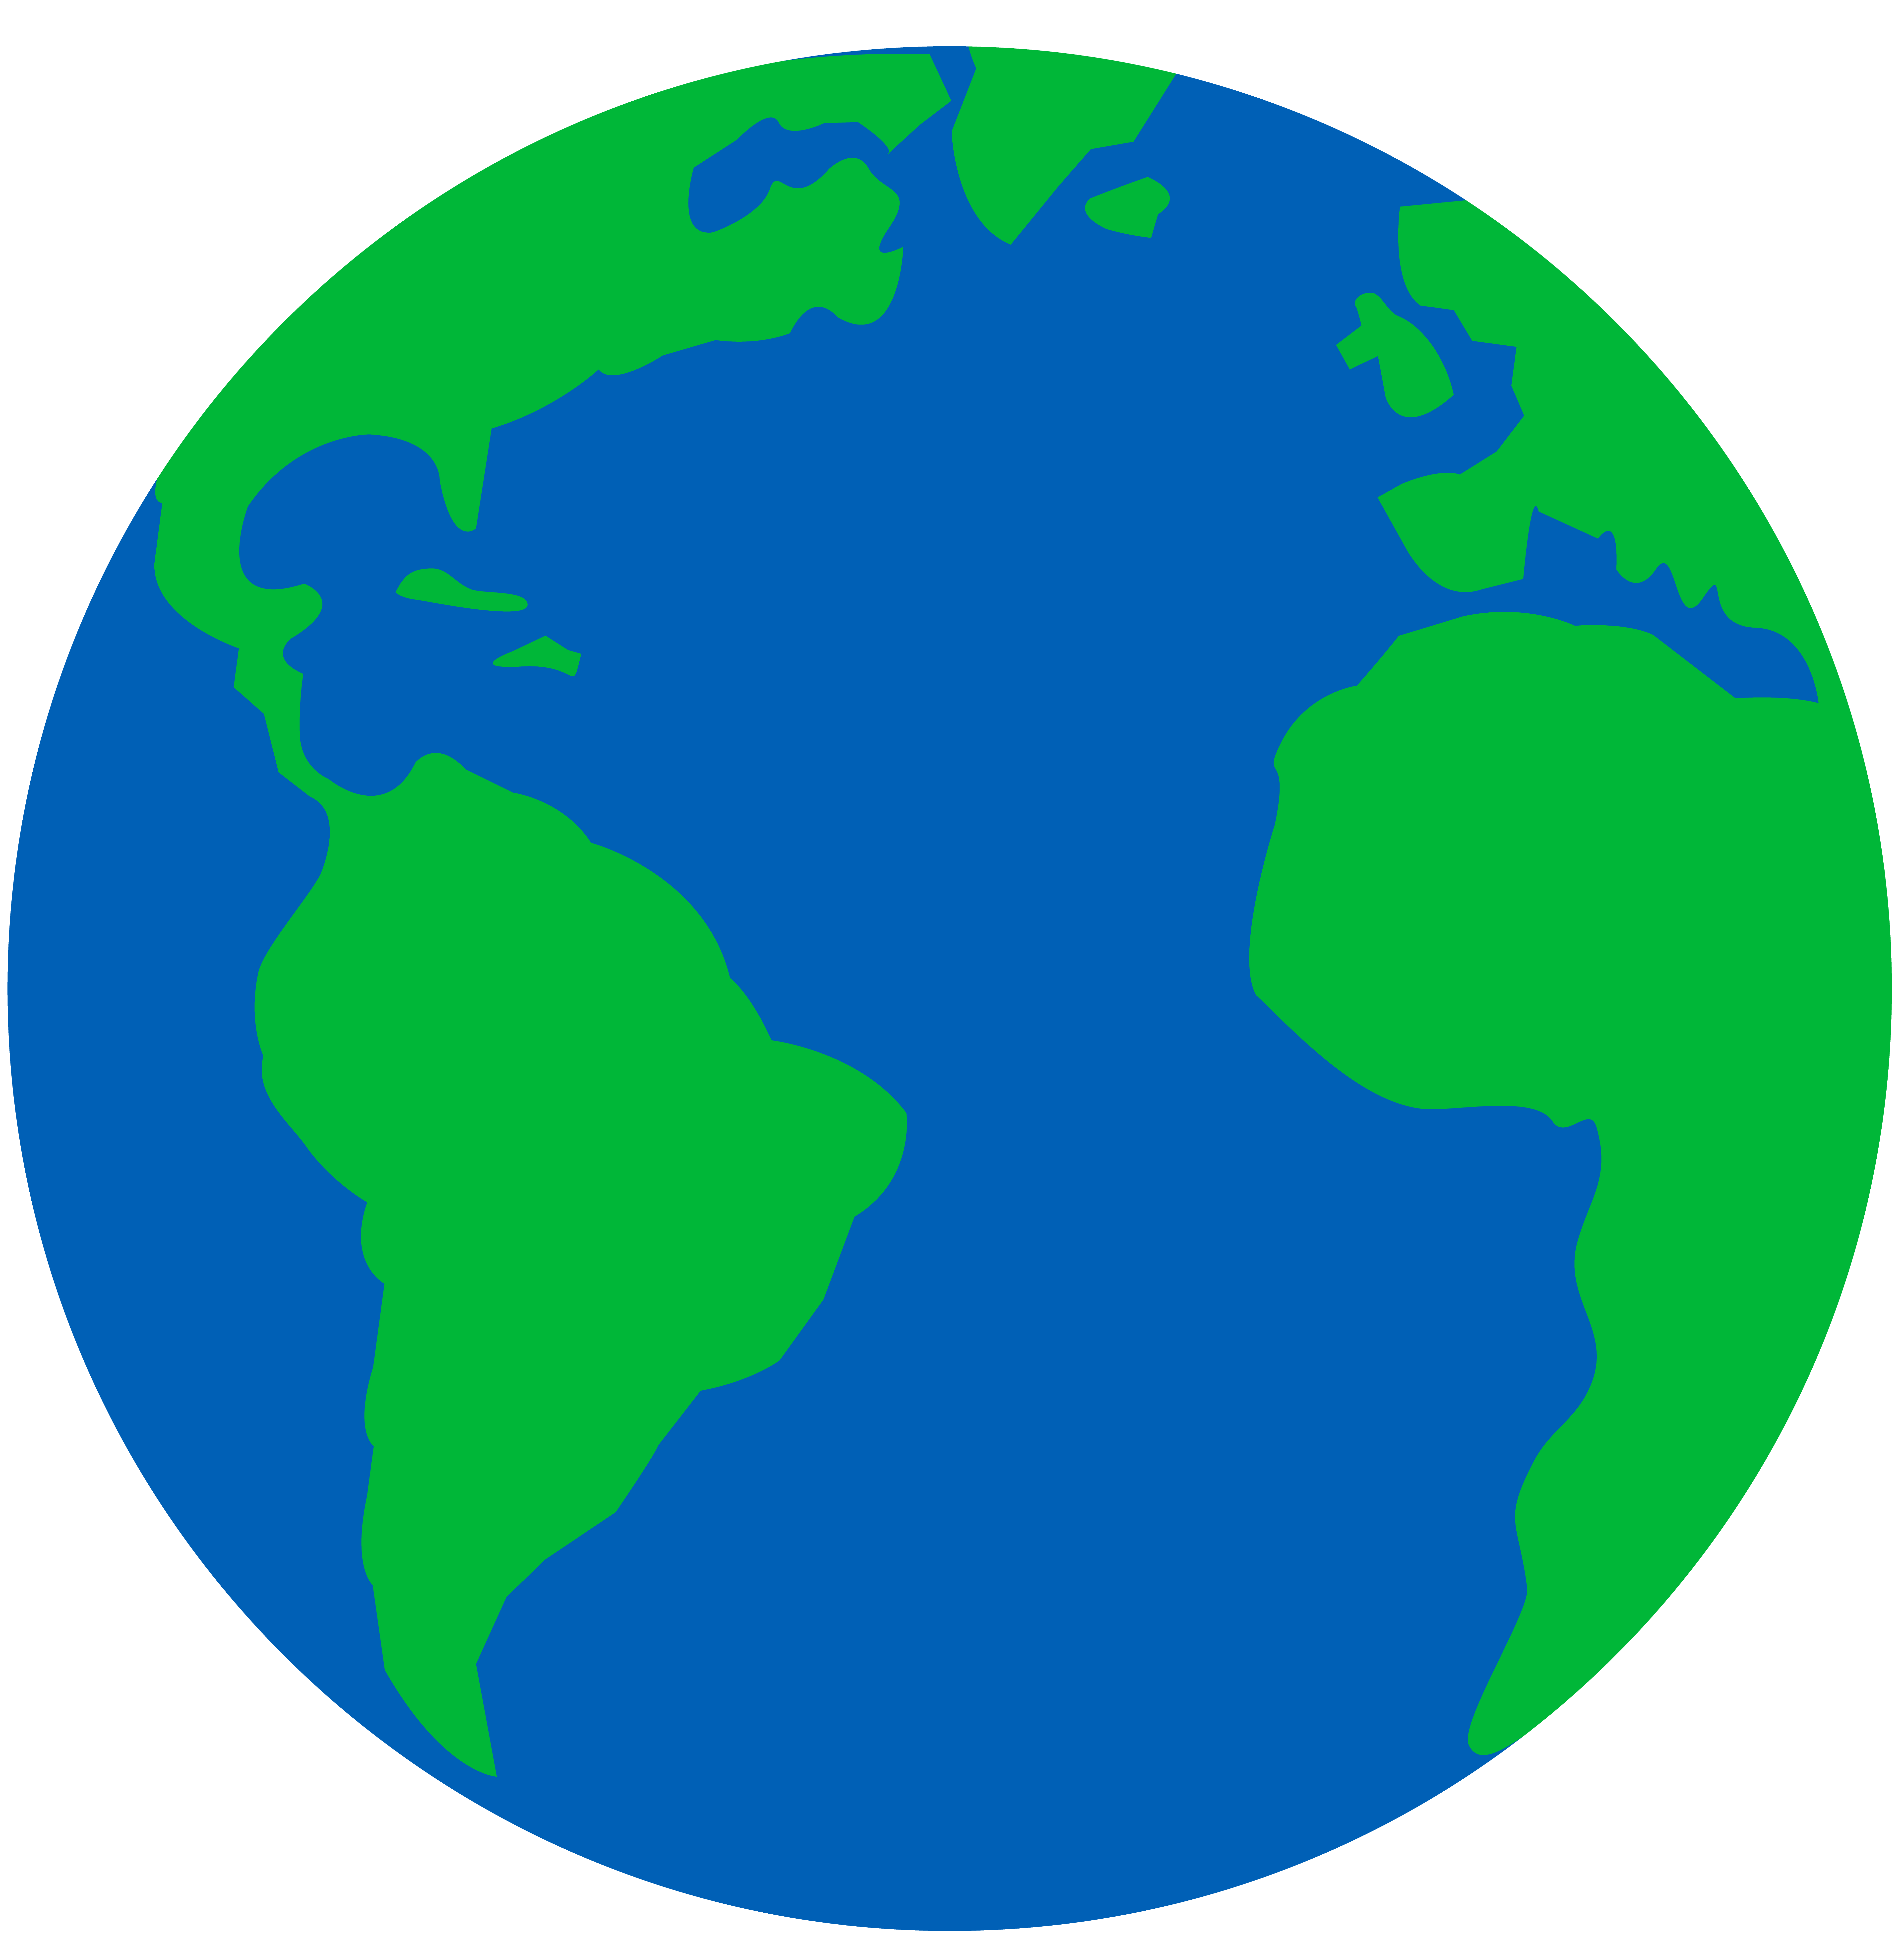 Asia drawing earth. Planet clipart at getdrawings